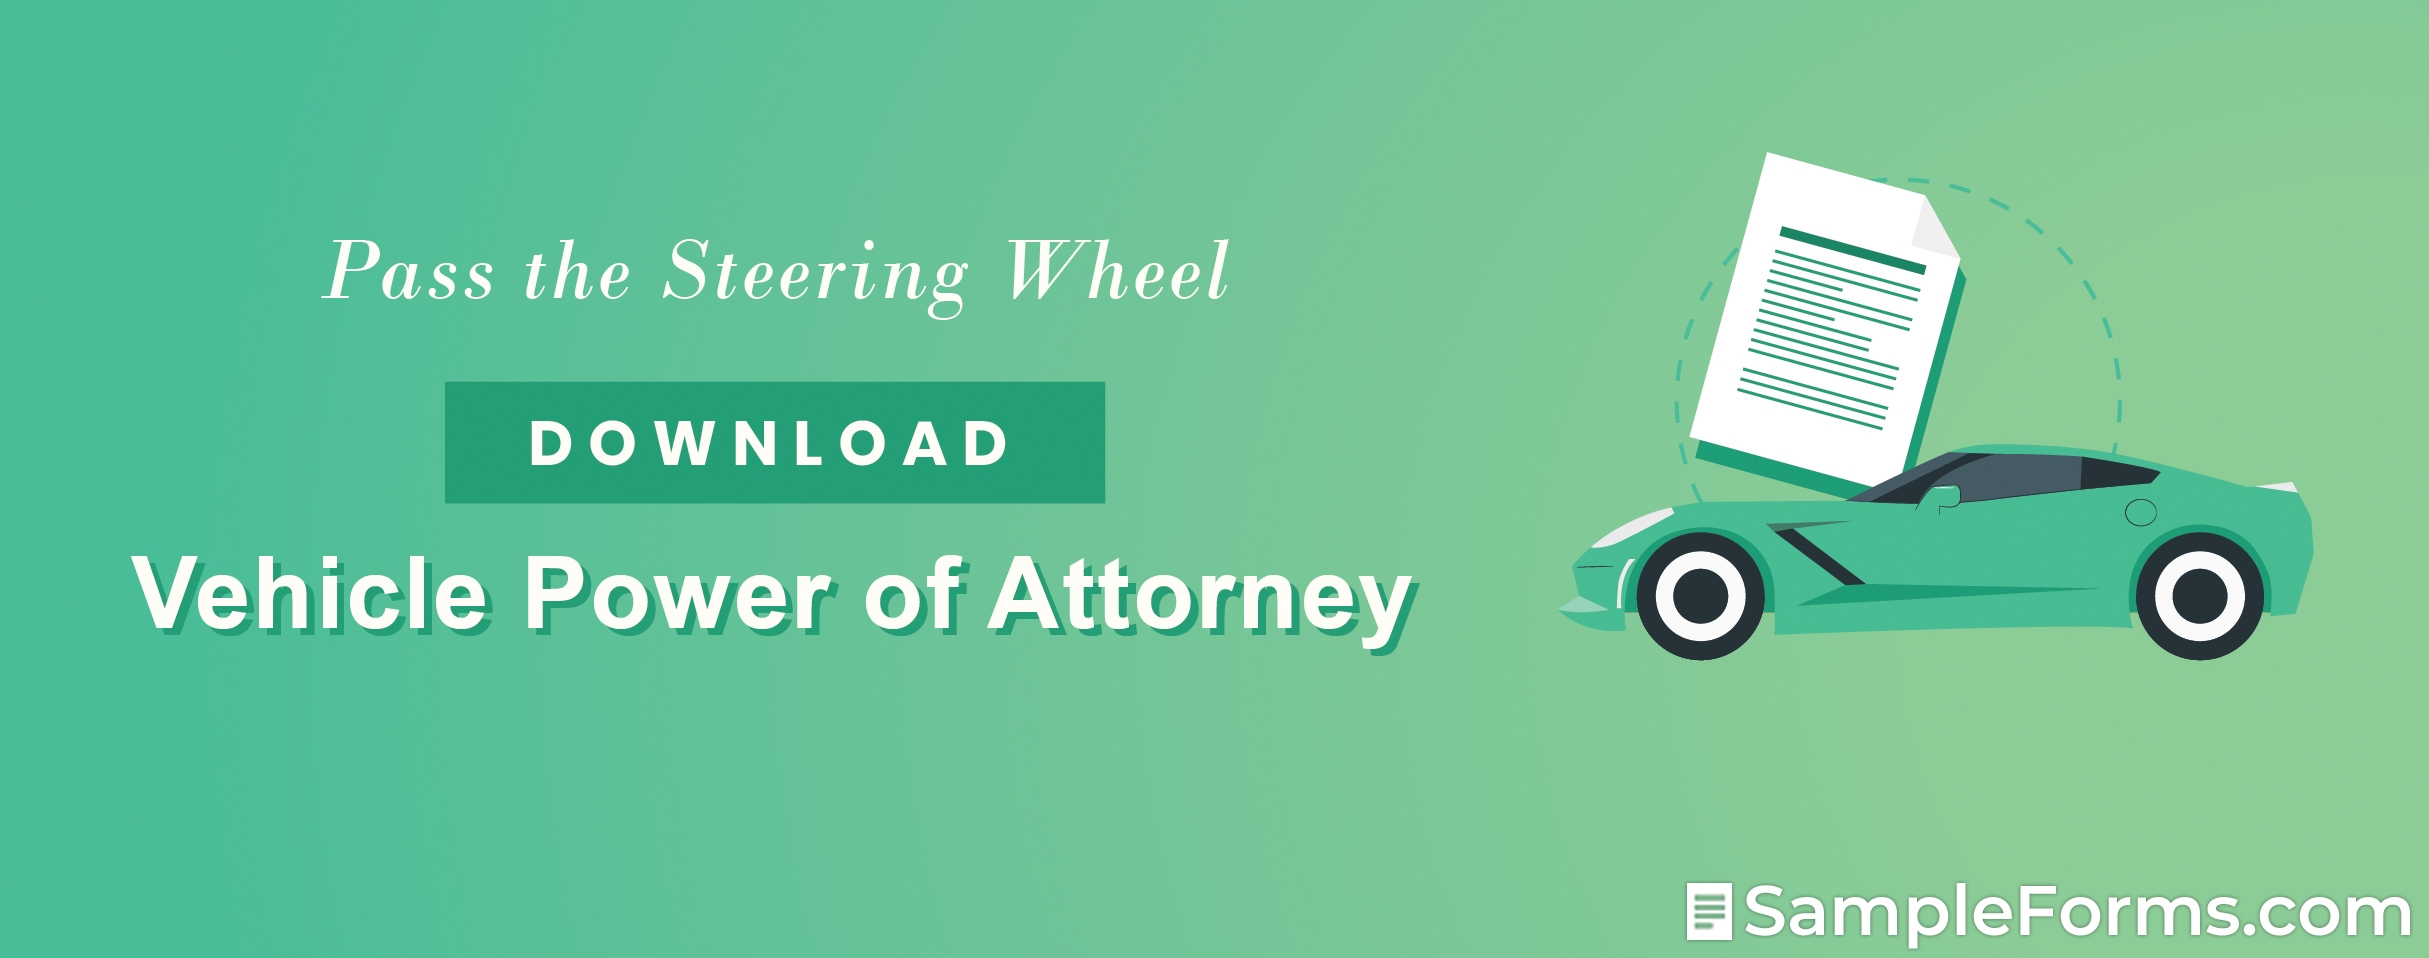 Vehicle Power of Attorney